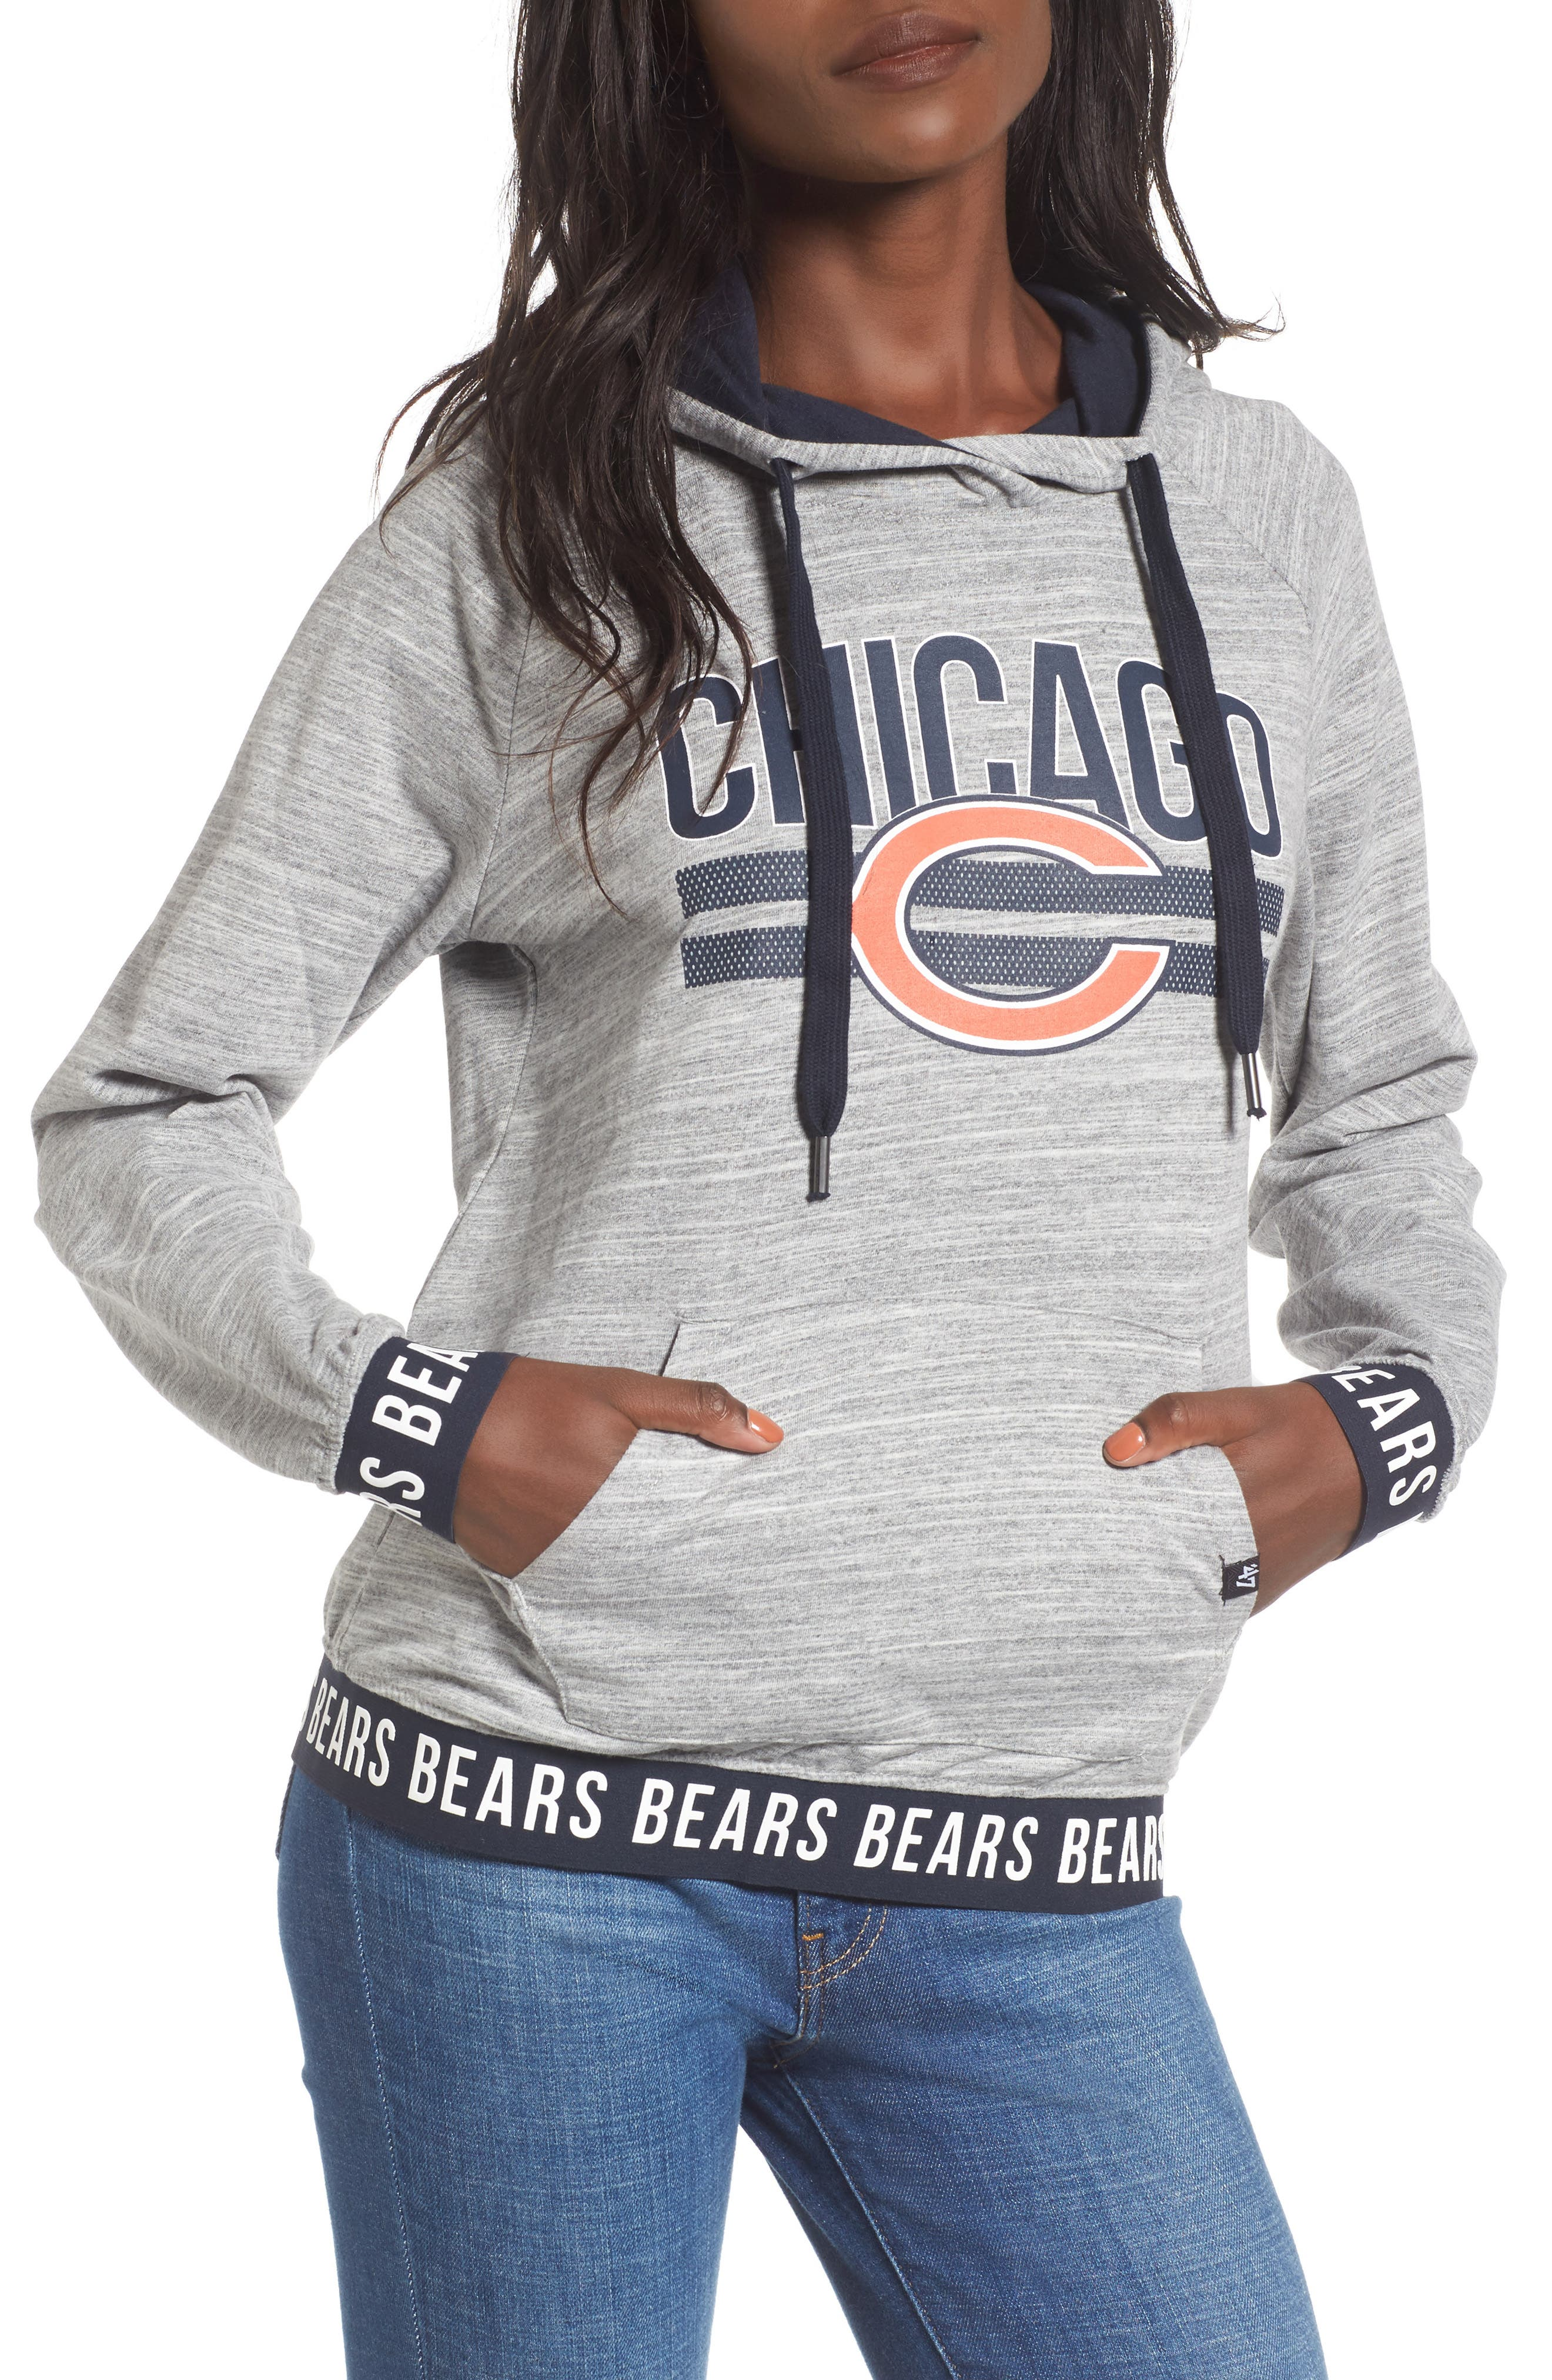 Revolve - Chicago Bears Hoodie,                         Main,                         color, Space Dye Grey